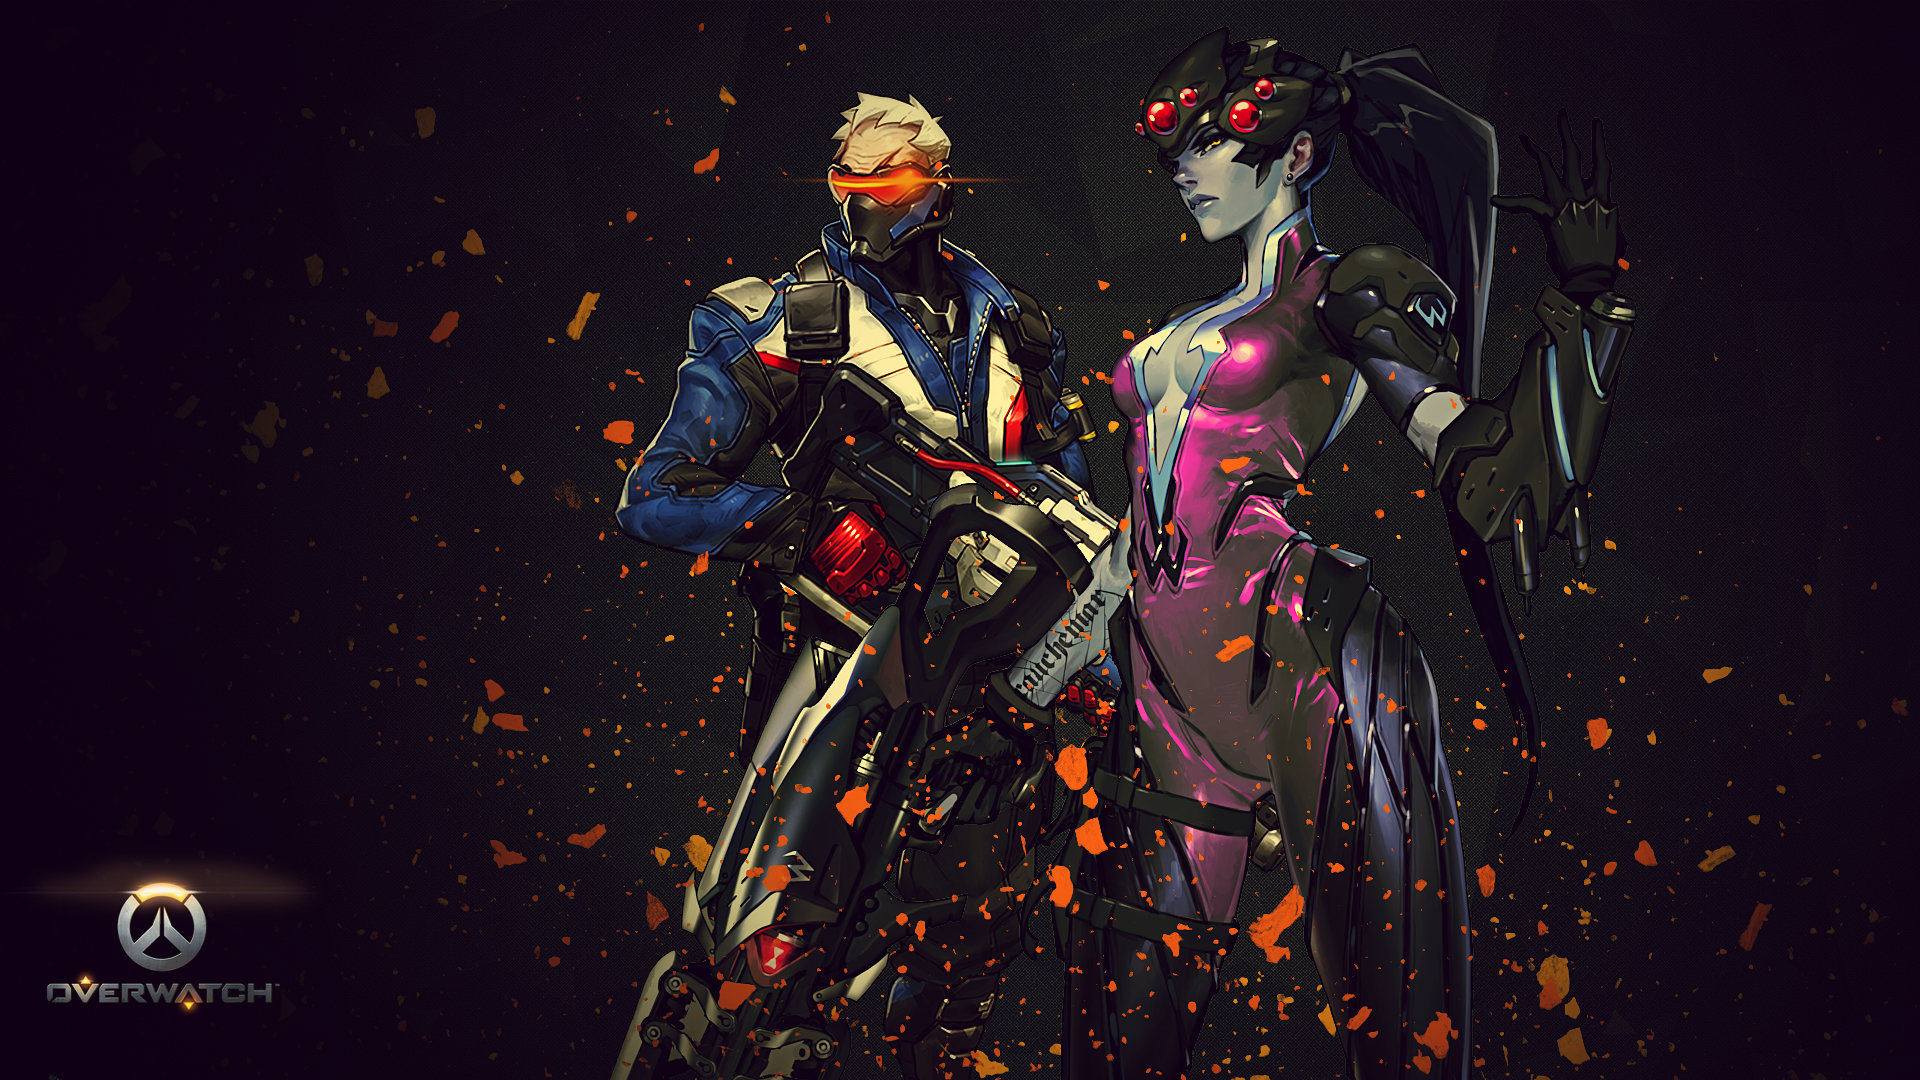 Download Hd 1920x1080 Overwatch Pc Wallpaper Id 170088 For Free